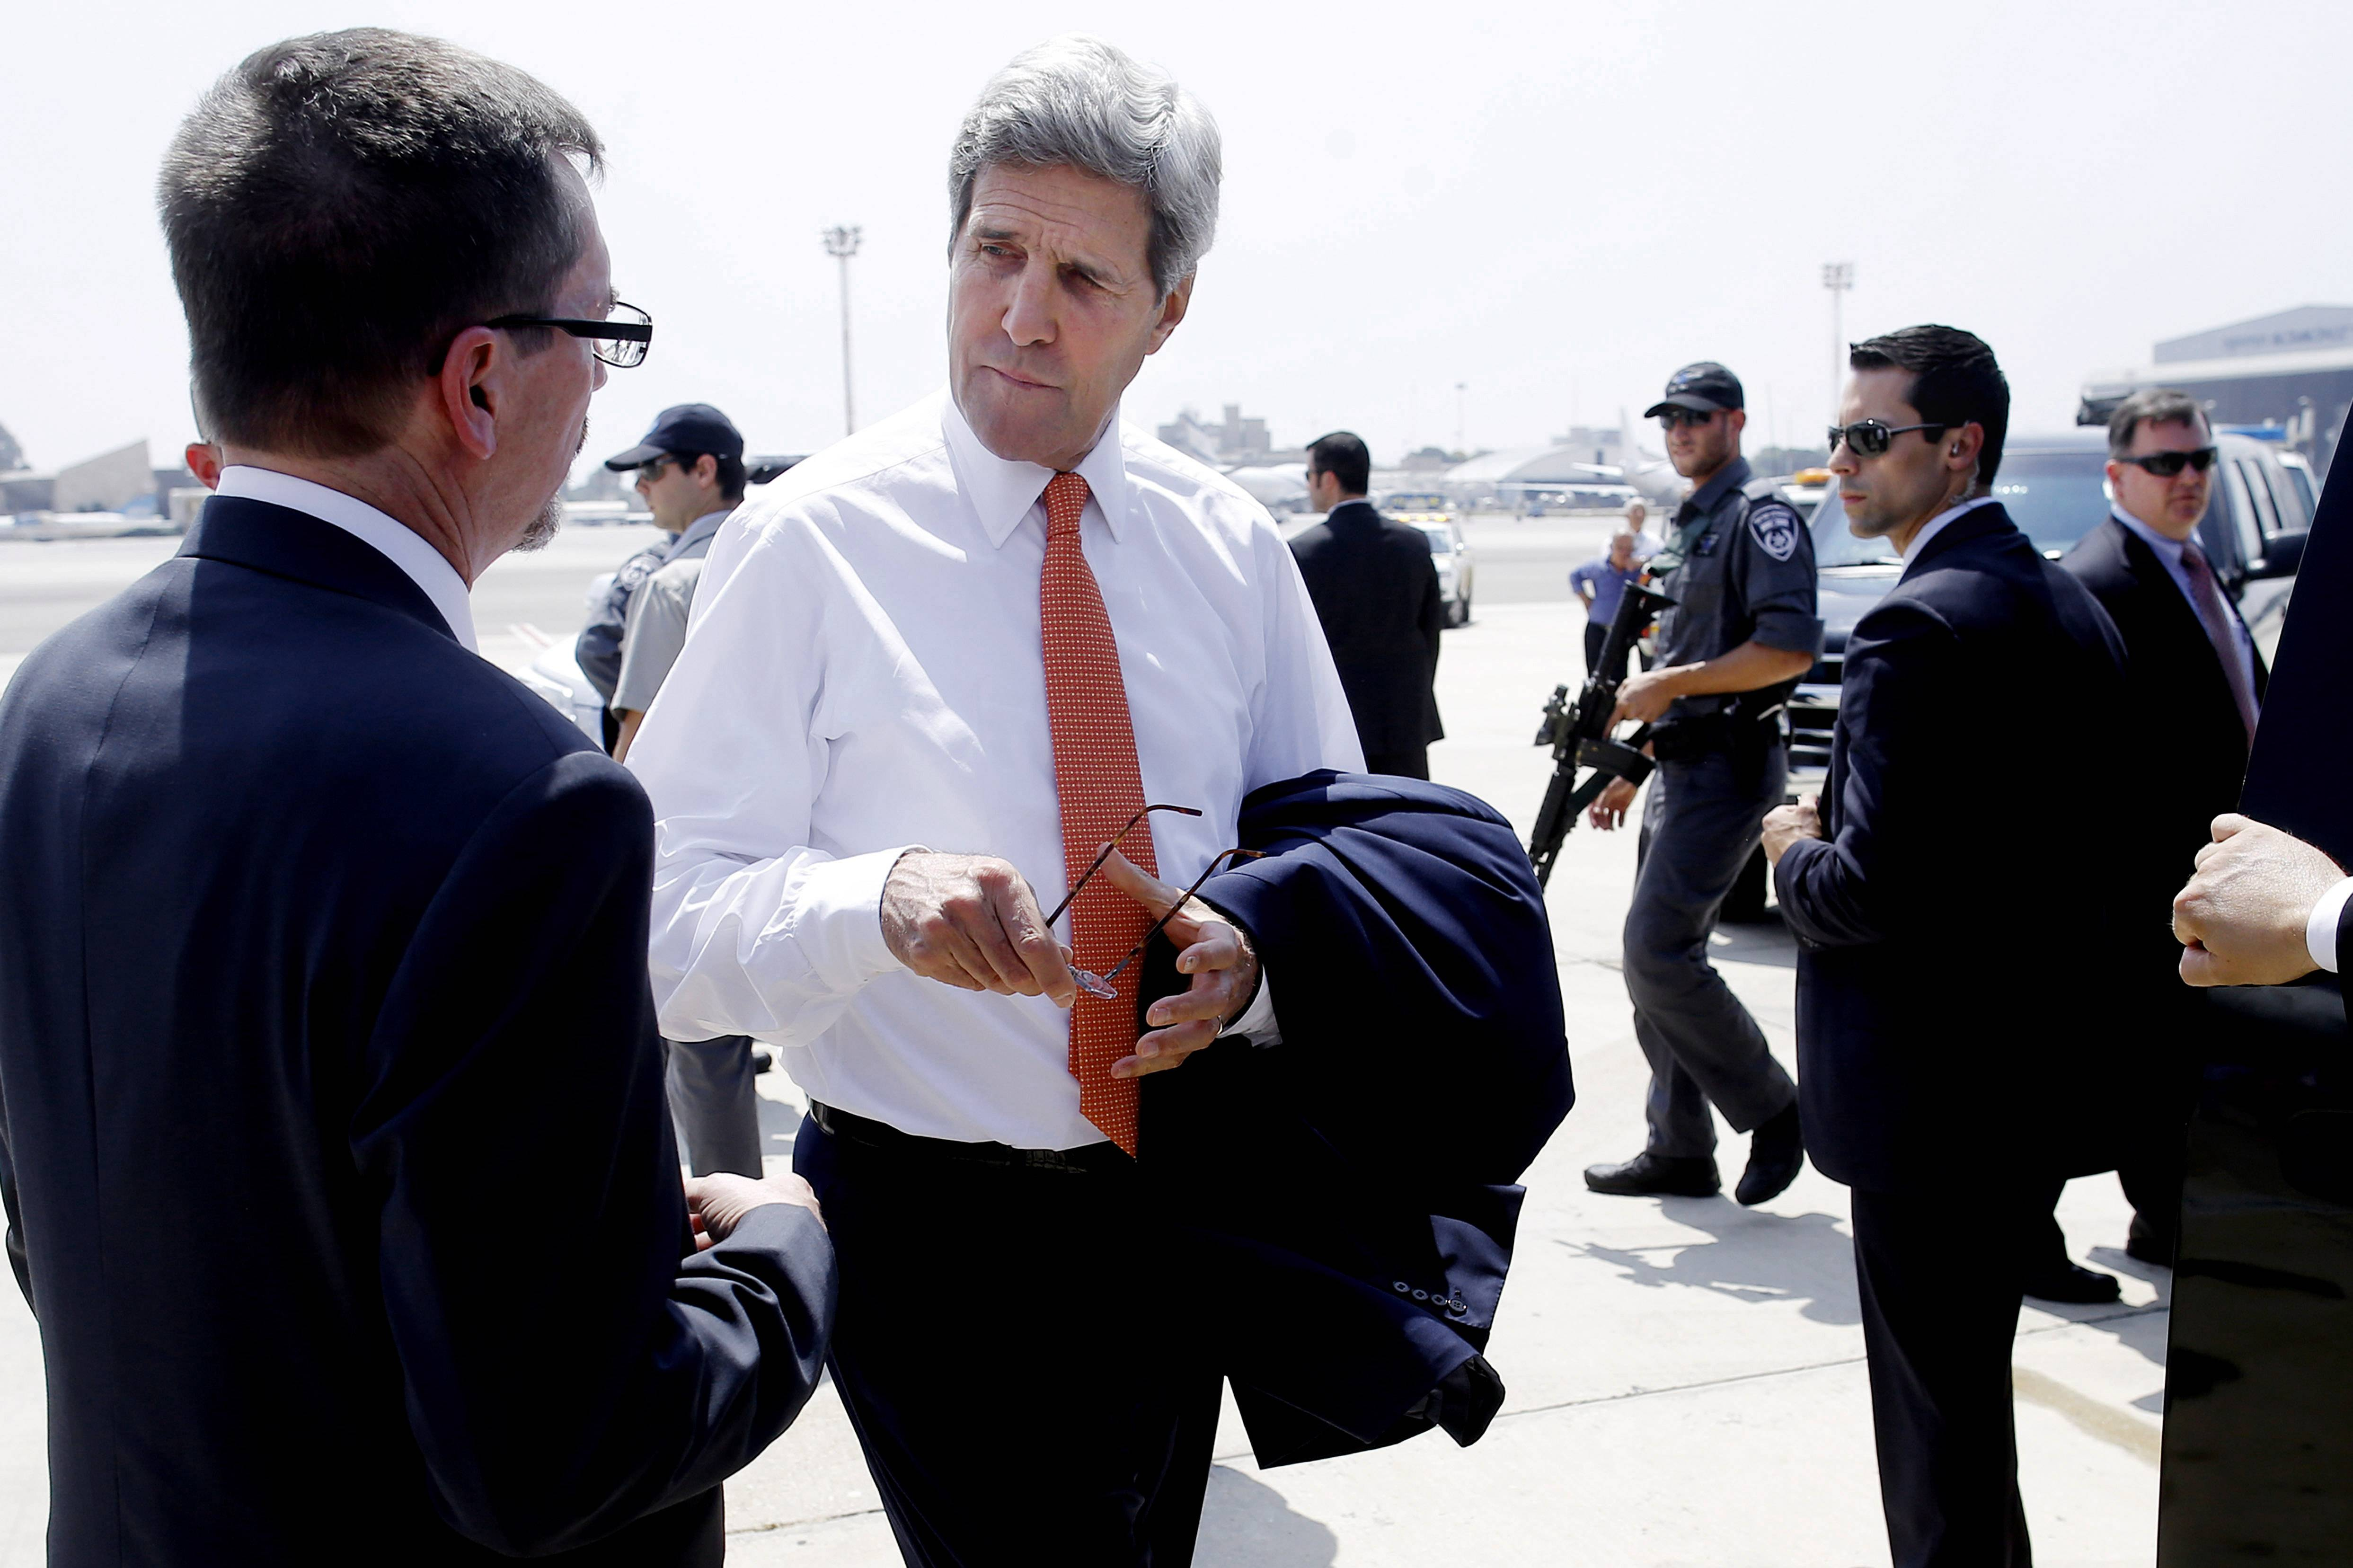 Associated Press U.S. Secretary of State John Kerry talks with U.S. Embassy Deputy Chief of Mission Bill Grant after his arrival in Tel Aviv, Israel, Wednesday.